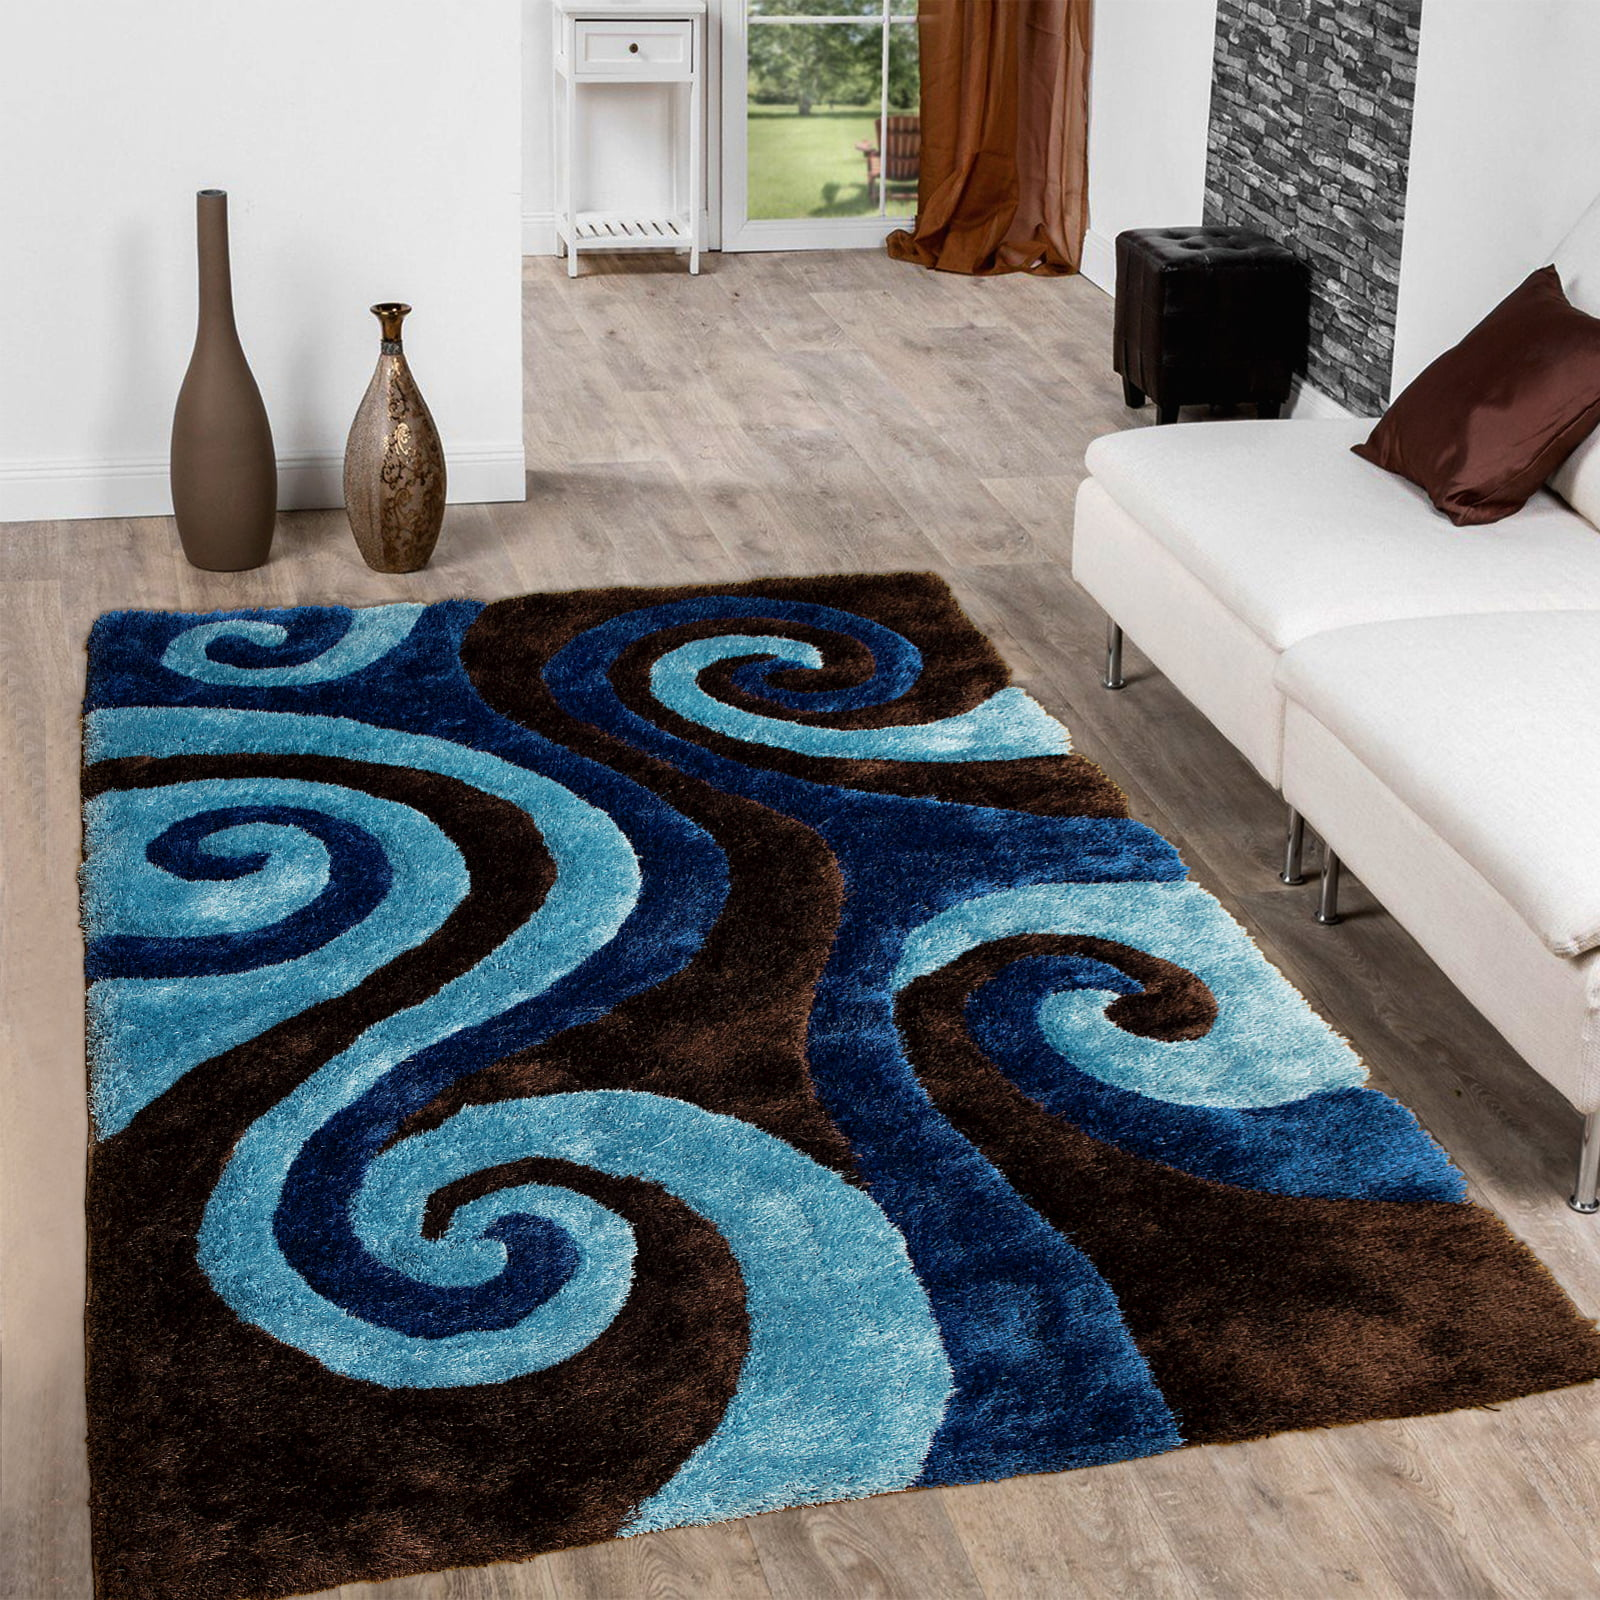 Allstar Brown Shaggy Area Rug with 3D Blue Spiral Design. Contemporary Formal Casual Hand Tufted (5' x 7') by Overstock